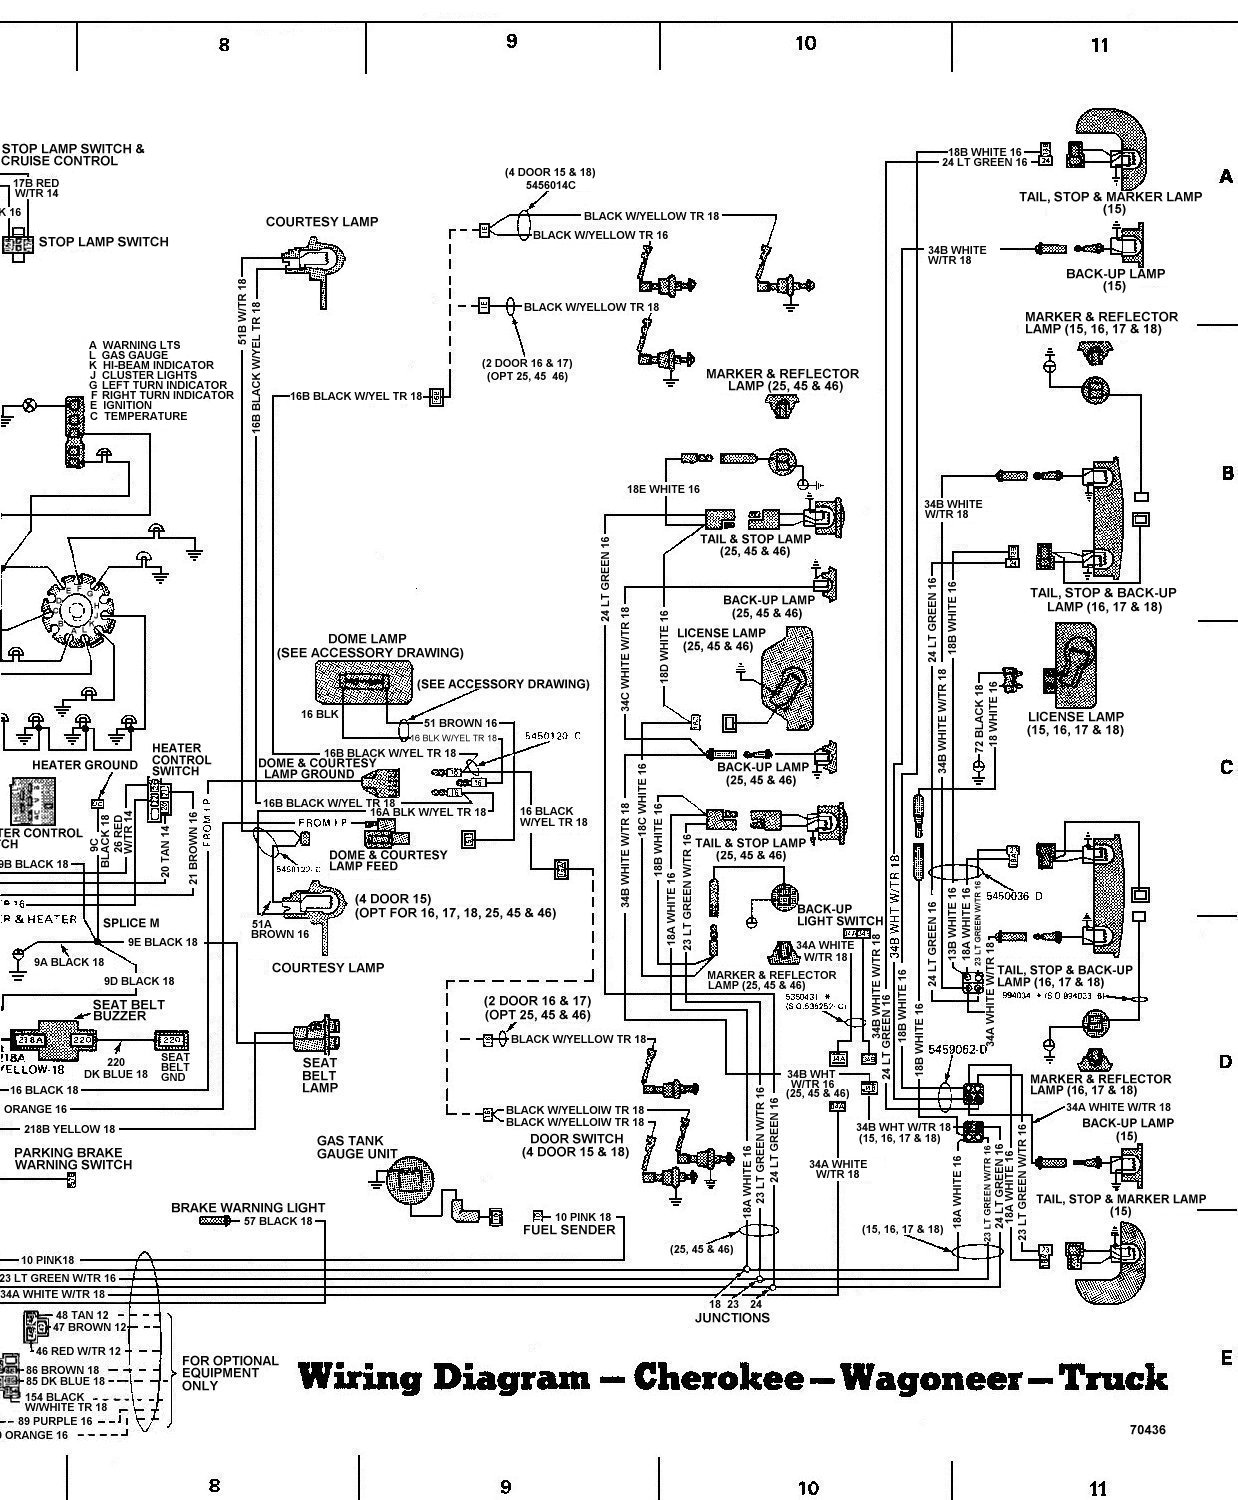 diagram] jeep cherokee horn wiring diagram full version hd quality wiring  diagram - 911wiring.prolocomontefano.it  prolocomontefano.it